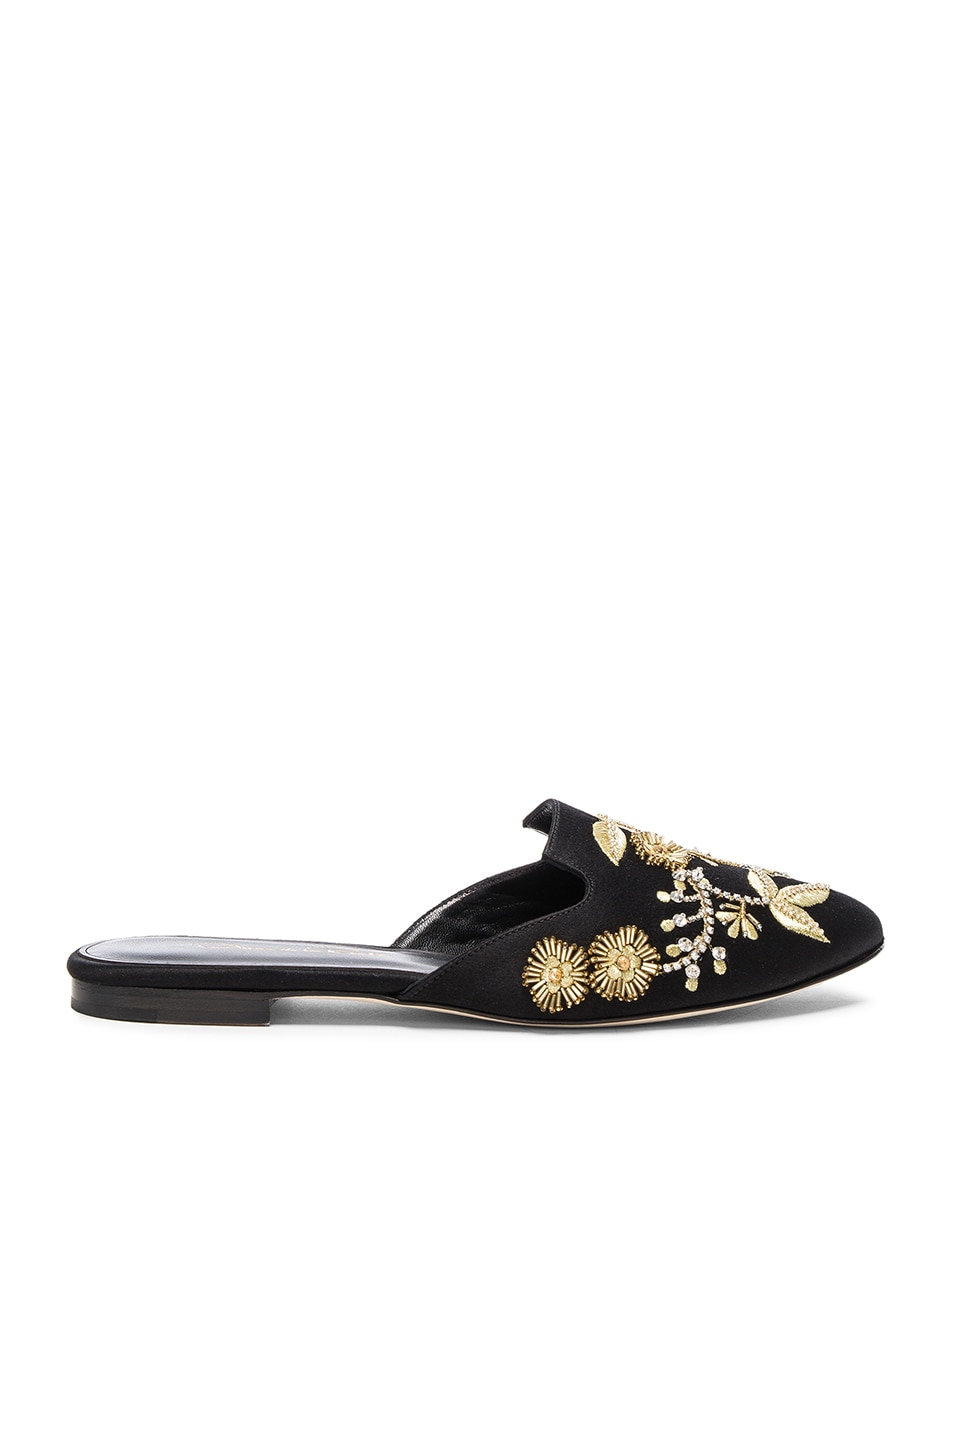 Image 1 of Oscar de la Renta Satin Wanda Flats in Black